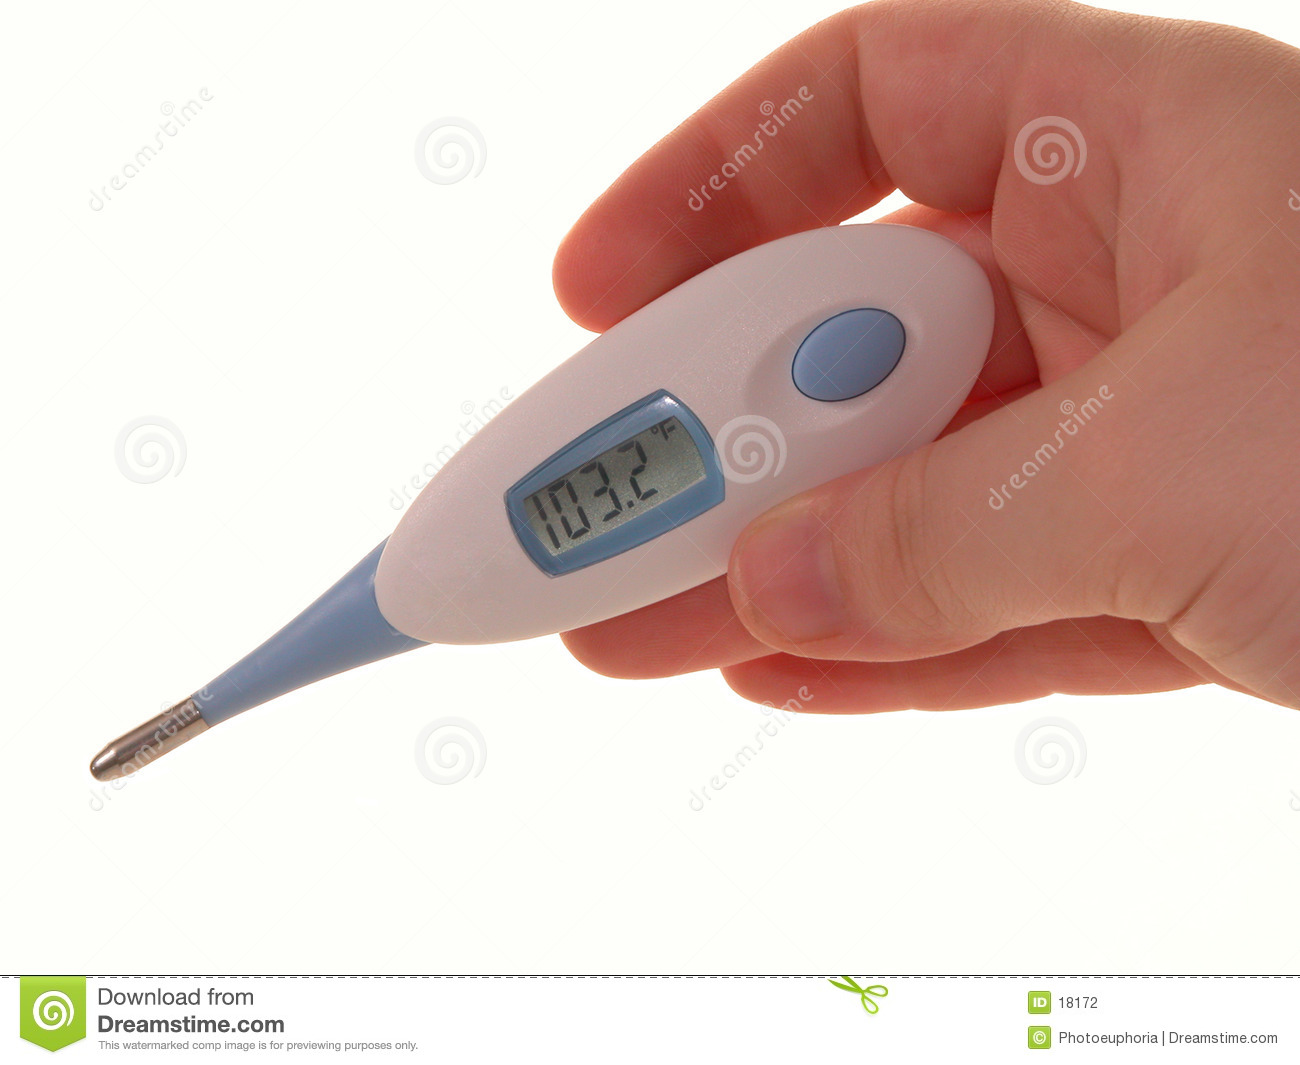 Thermometer Fever Clipart Medical  103 2 feverThermometer Fever Clipart